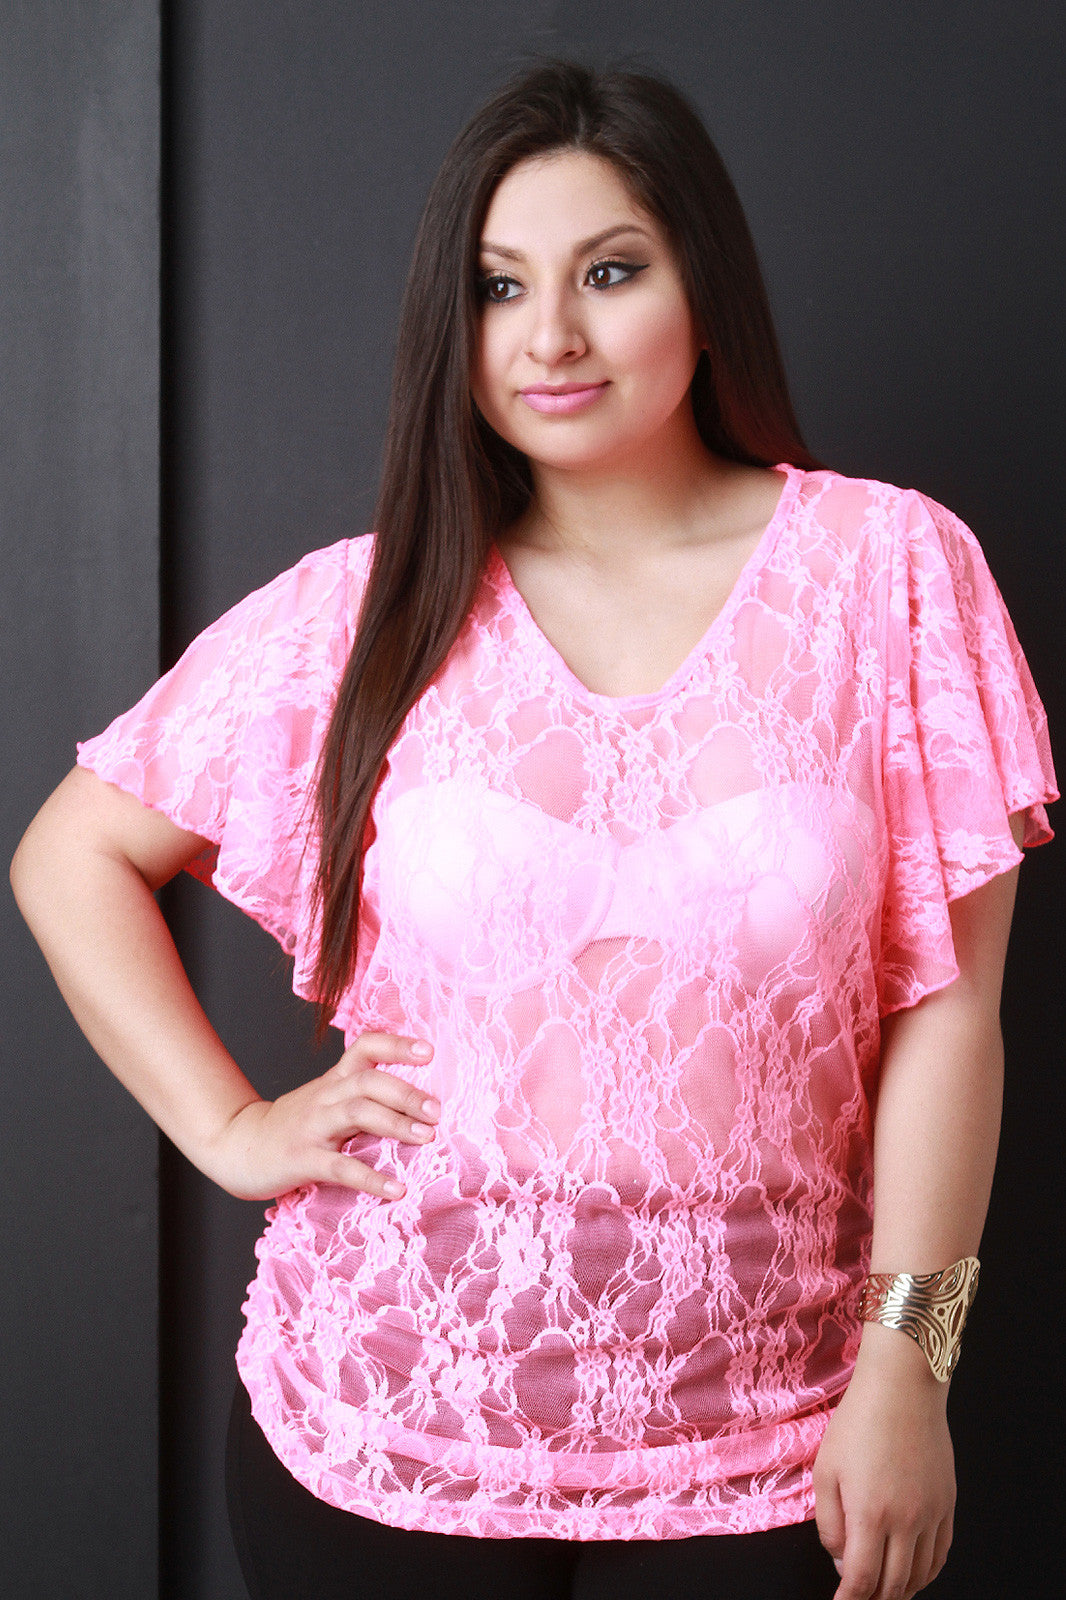 V-neck Floral Lace Pattern Top - Thick 'N' Curvy Shop - 4